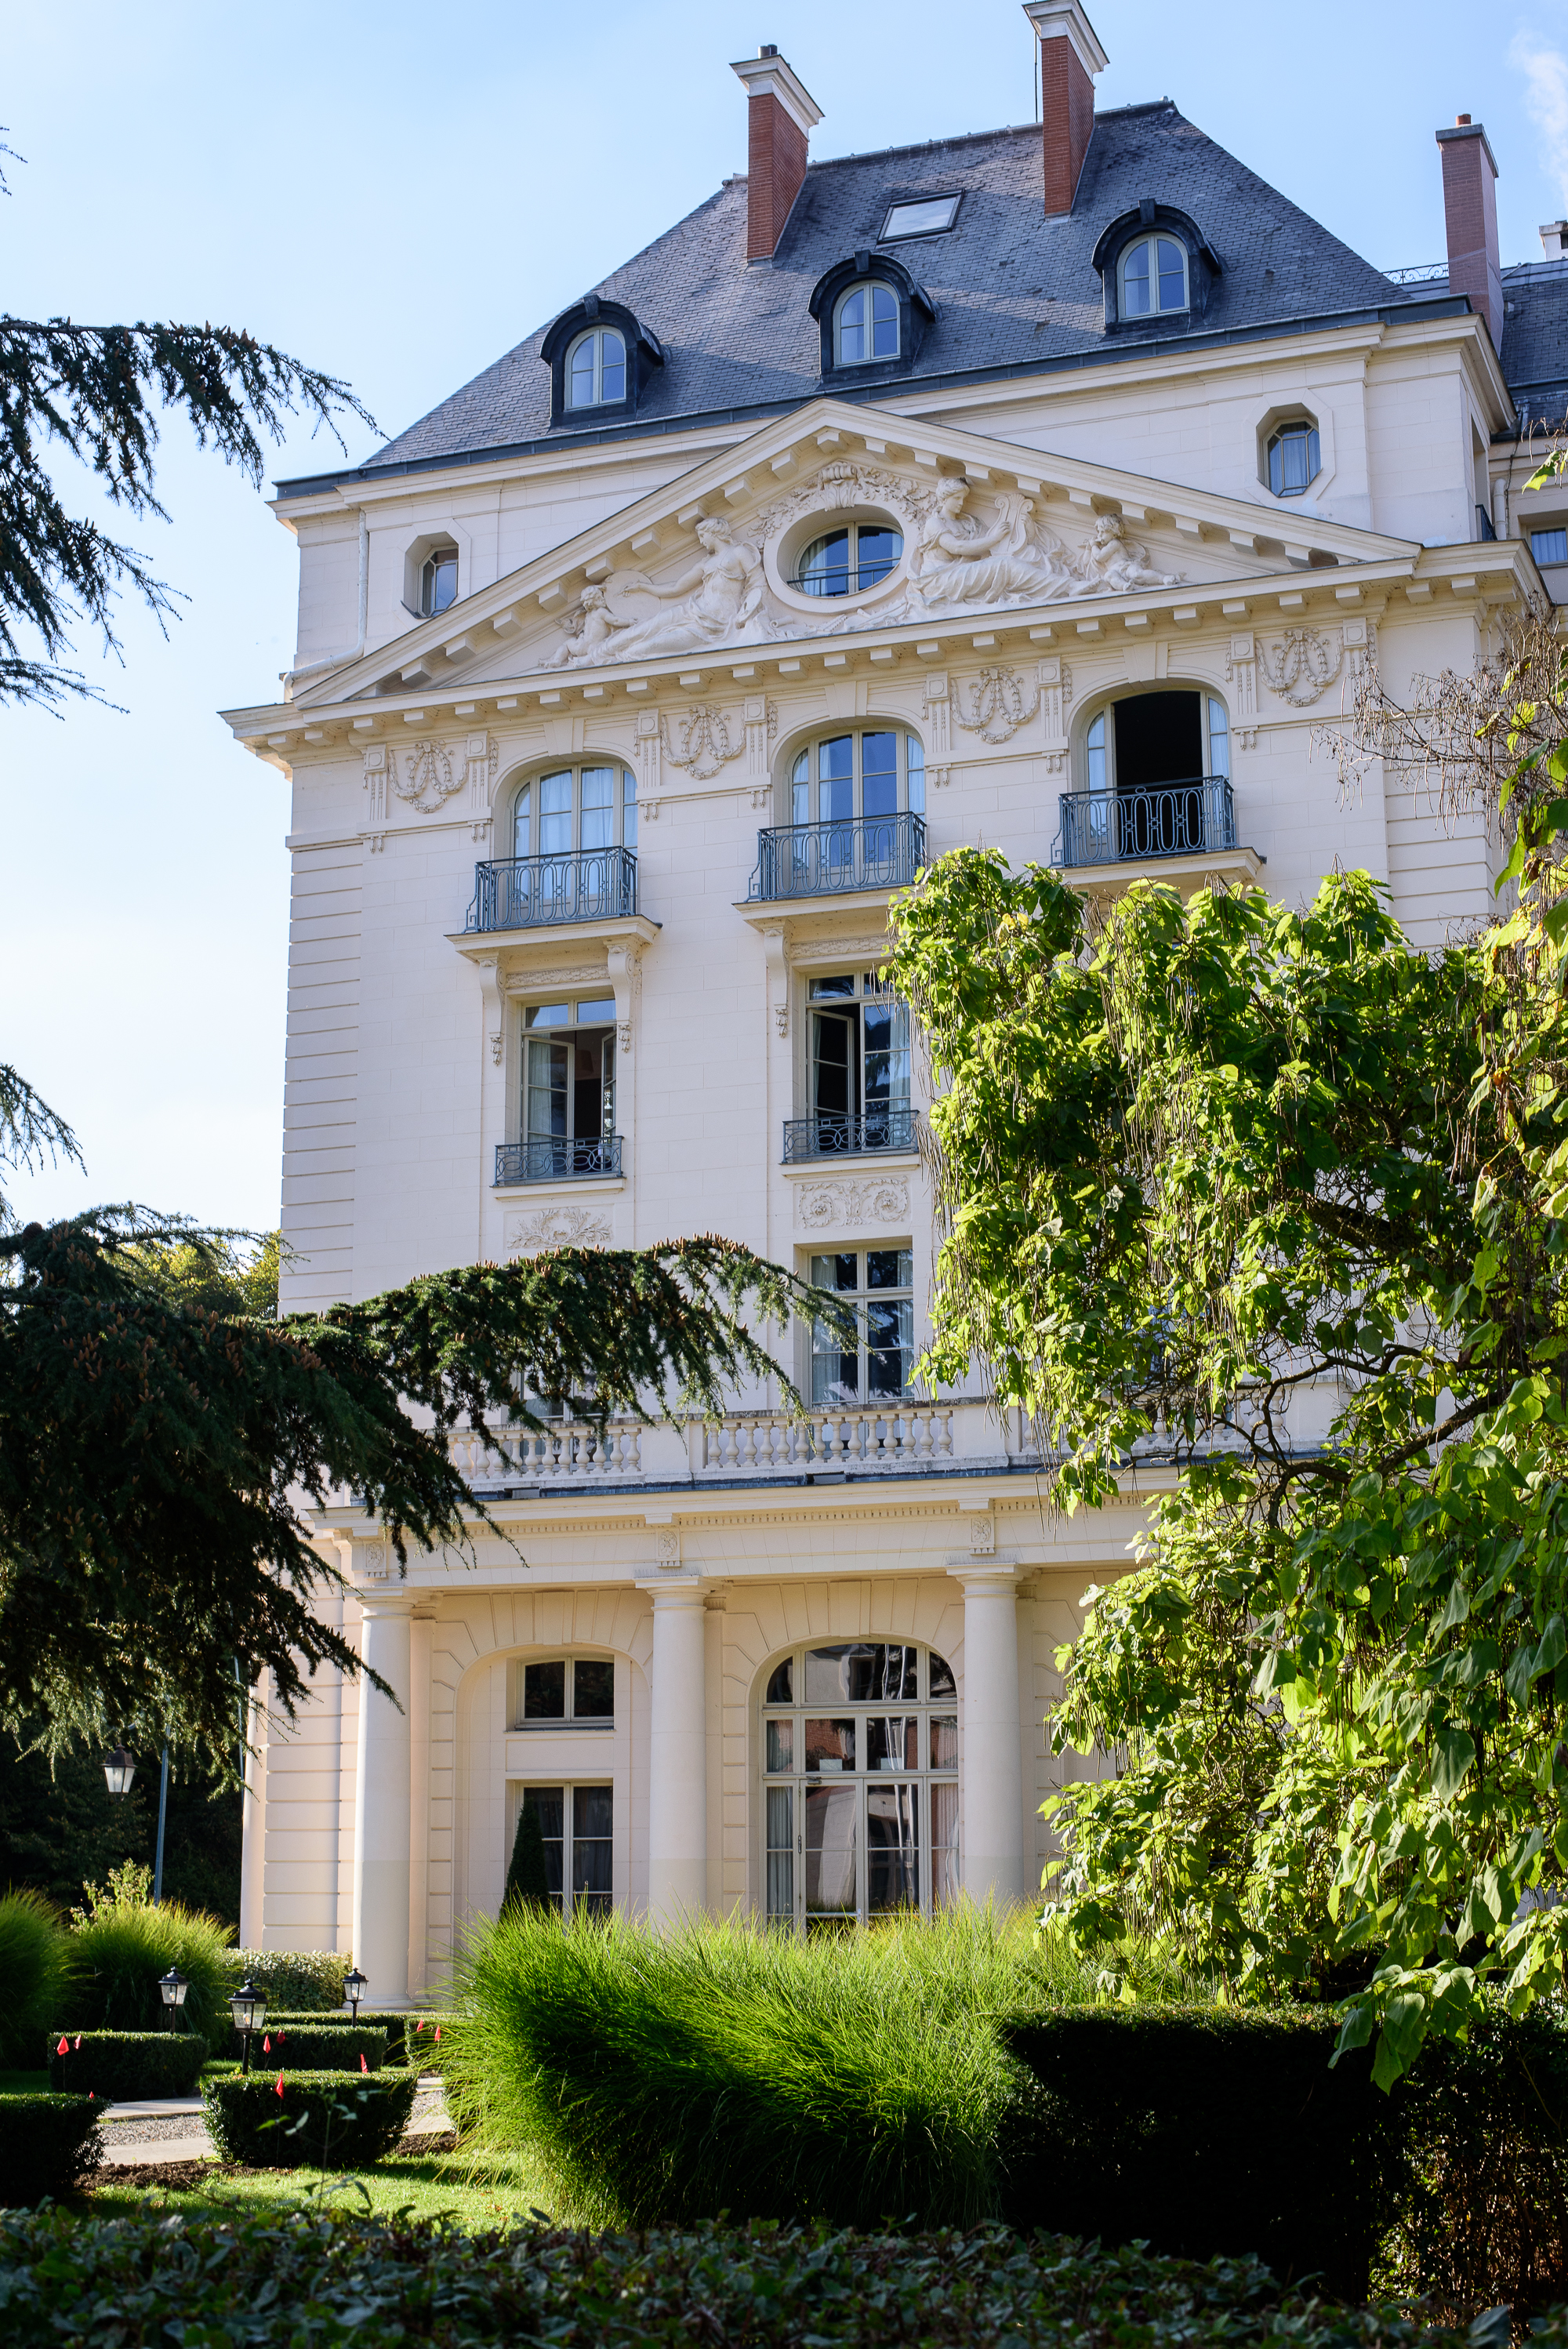 Trianon palace versailles style plaza - Hotel trianon versailles ...